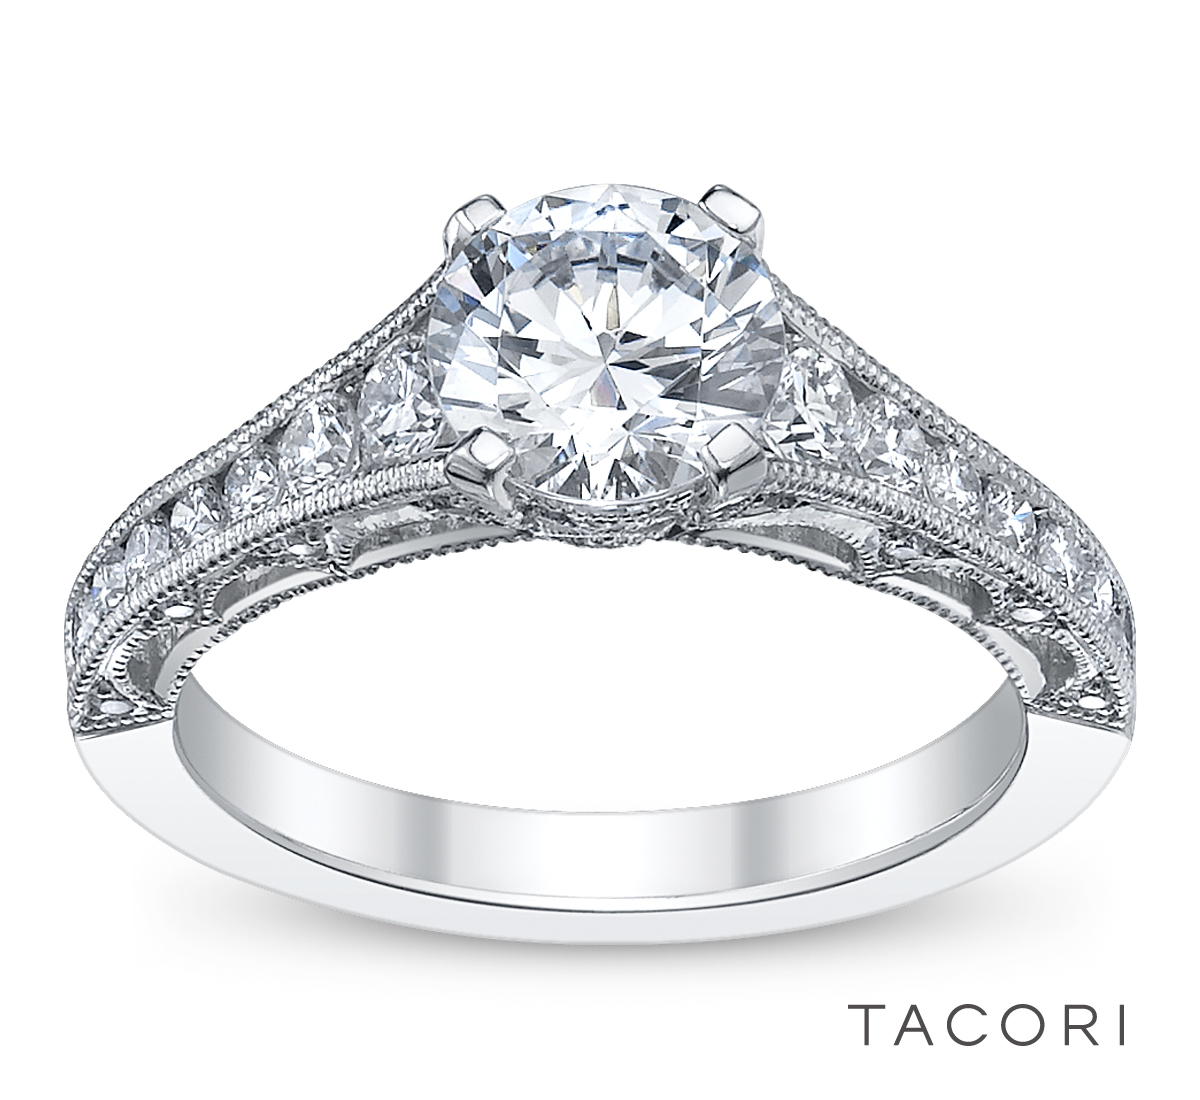 engagement ring of the day tacori robbins brothers